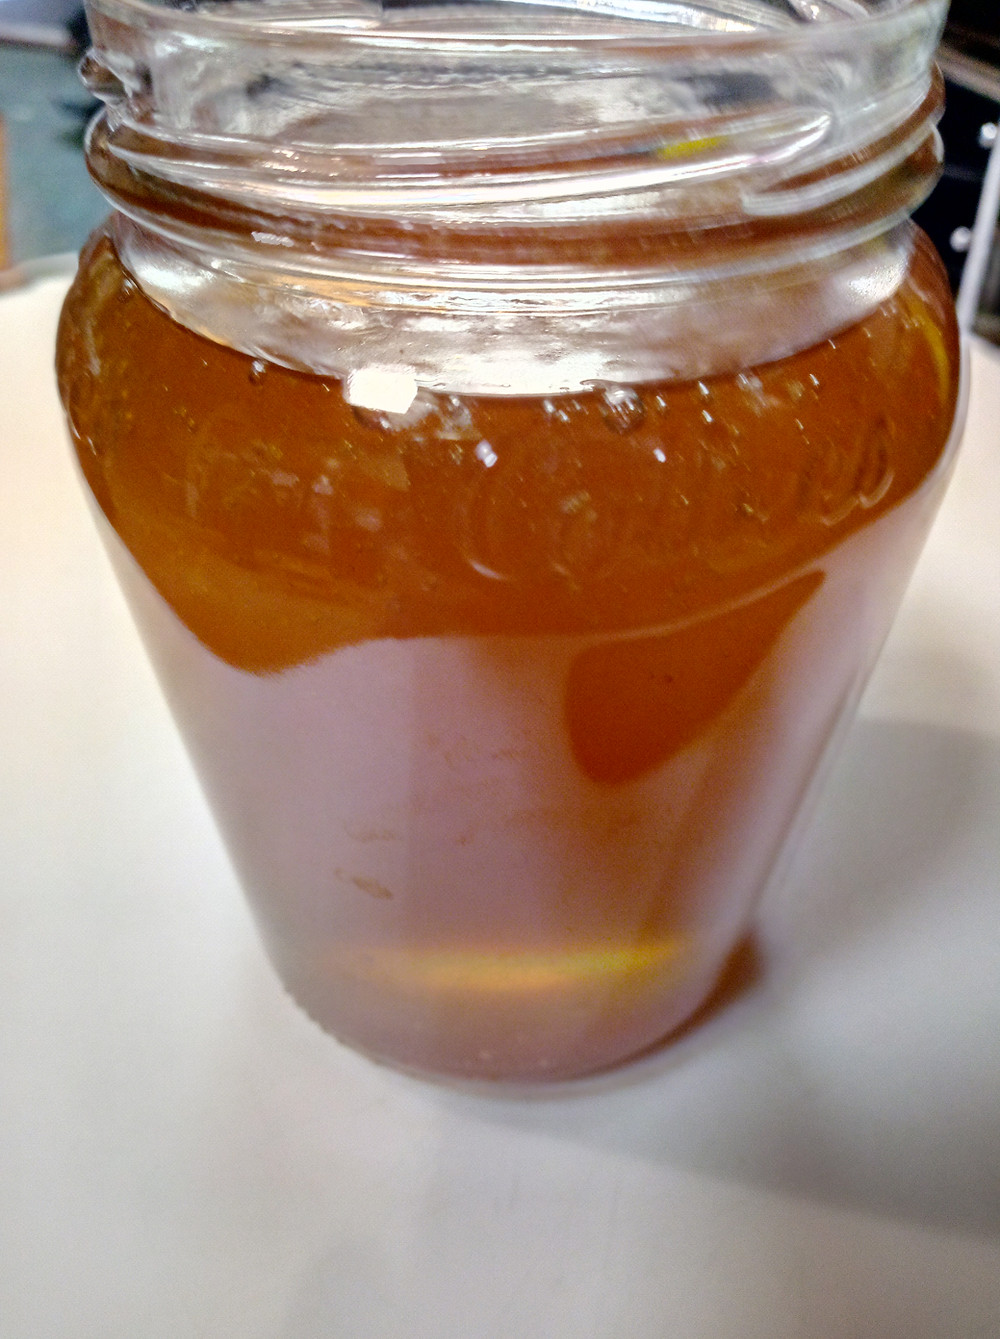 refill honey jars plastic free